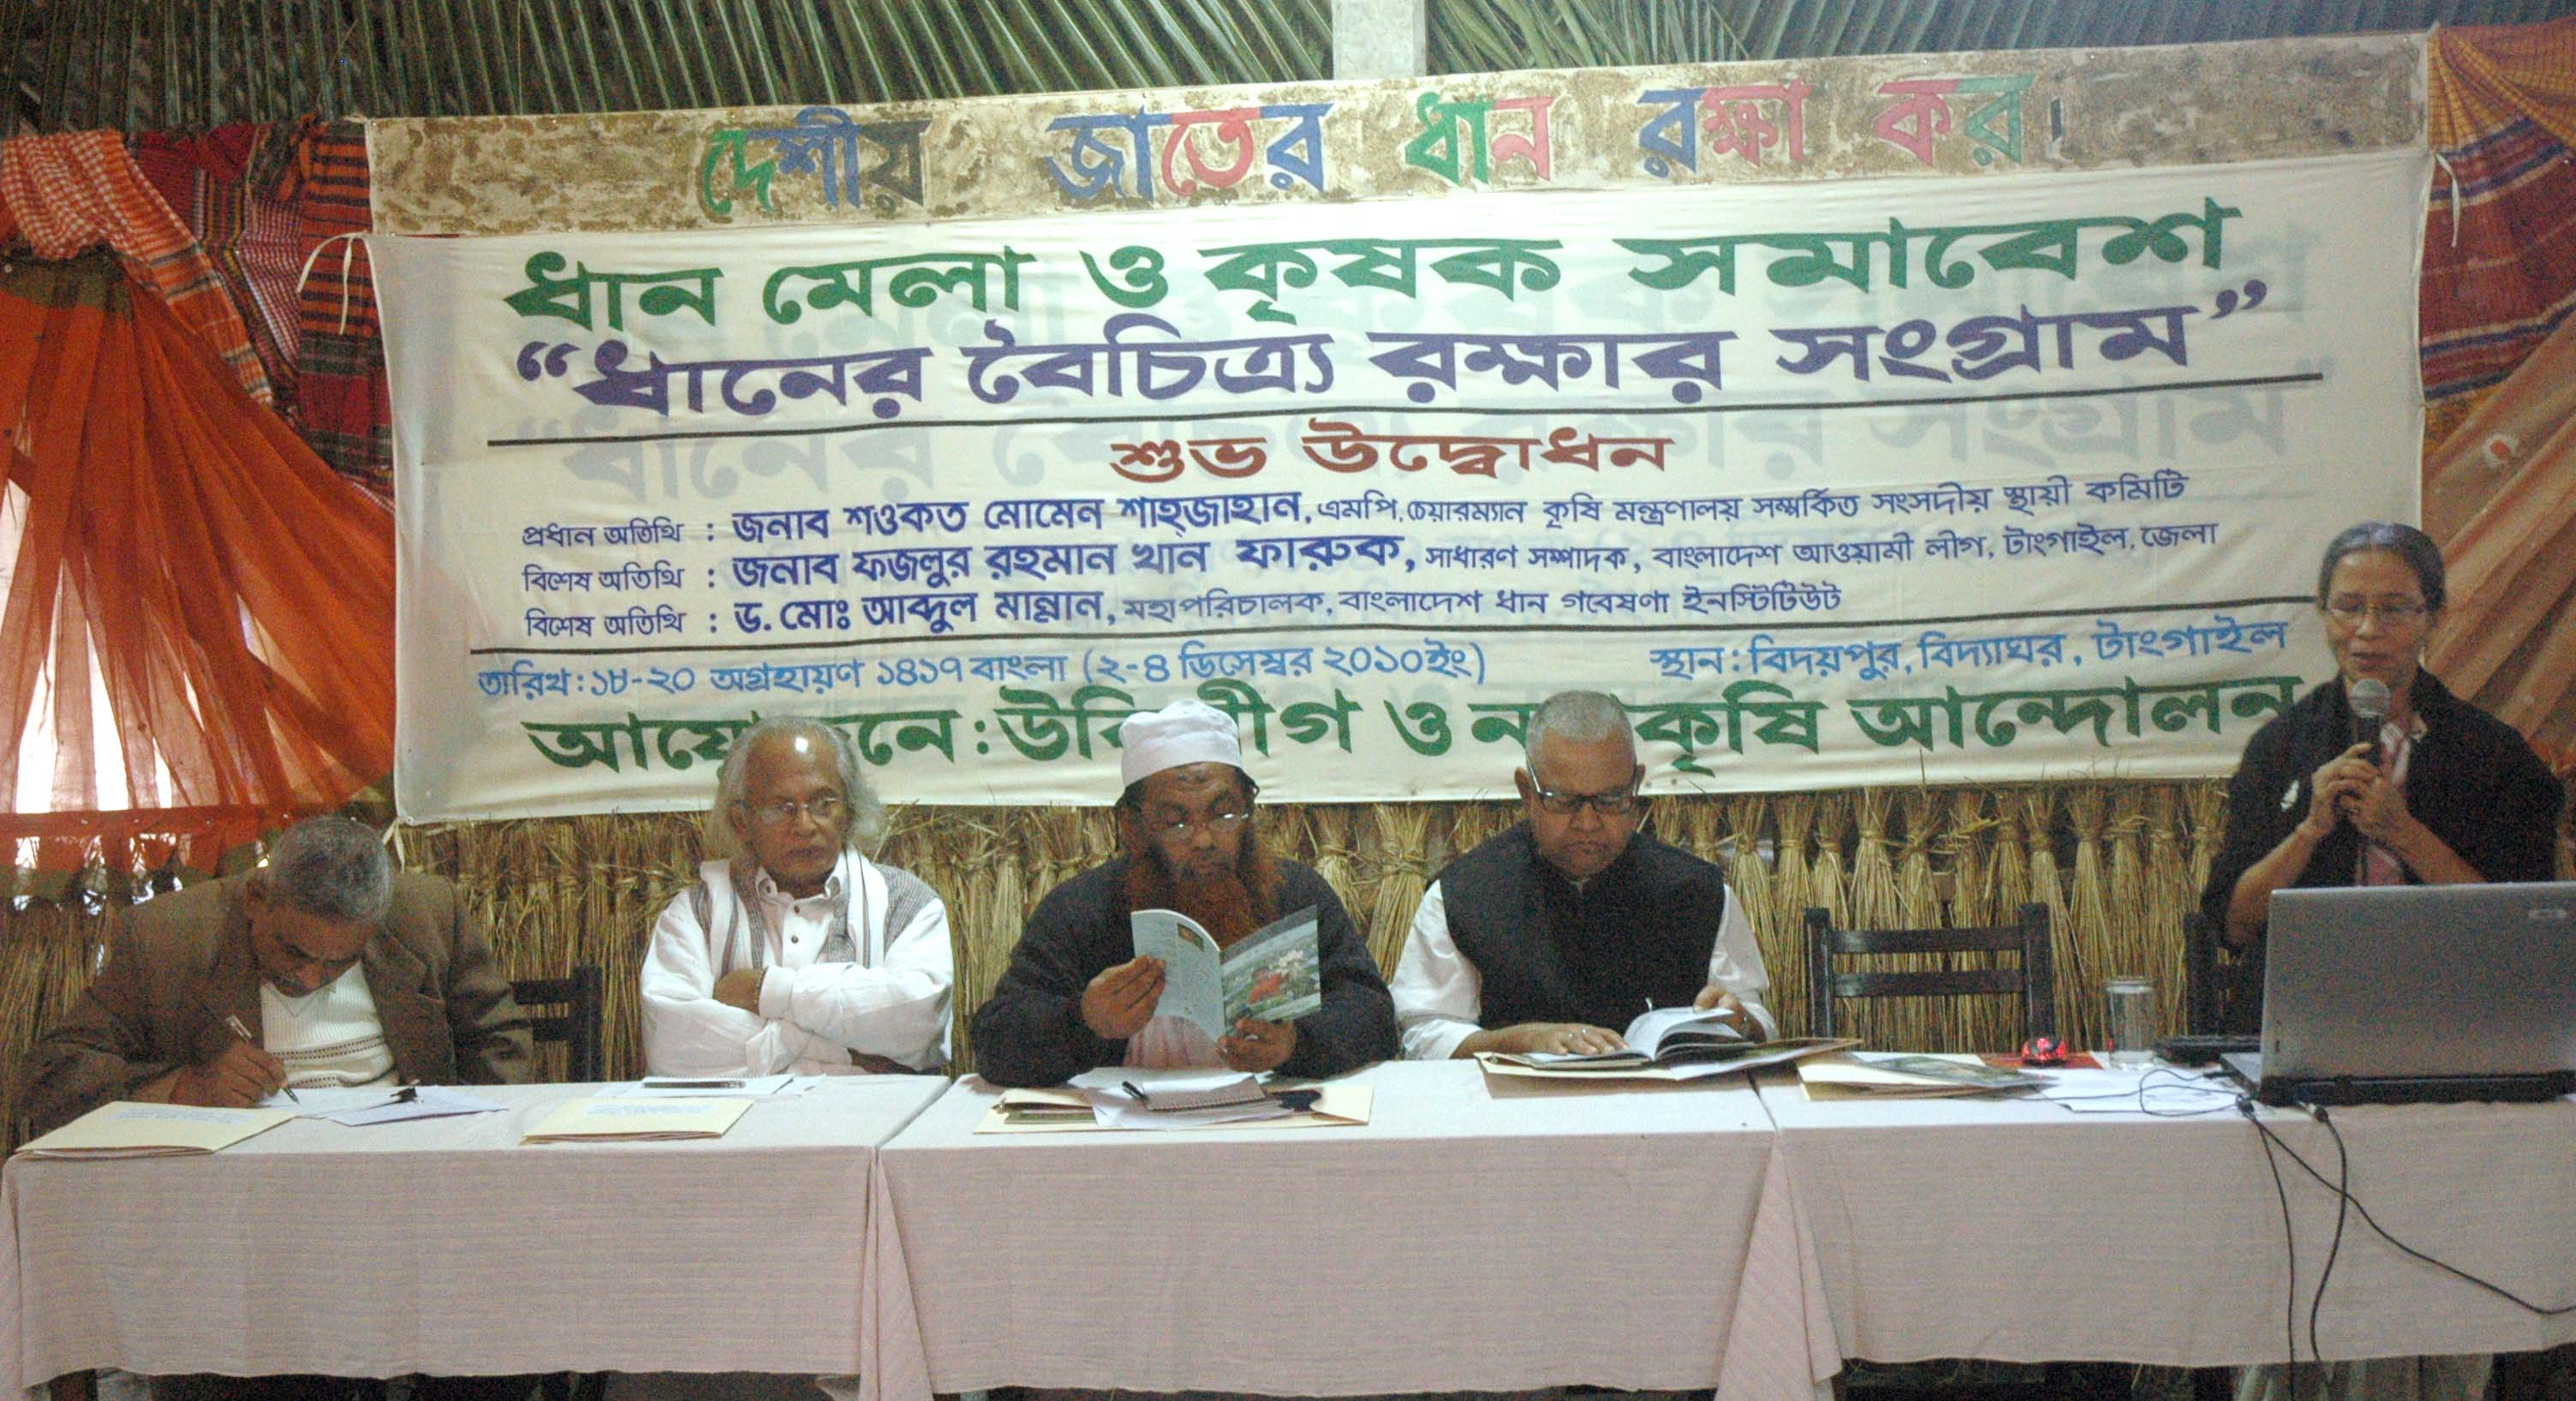 Nayakrishi presentation and banner